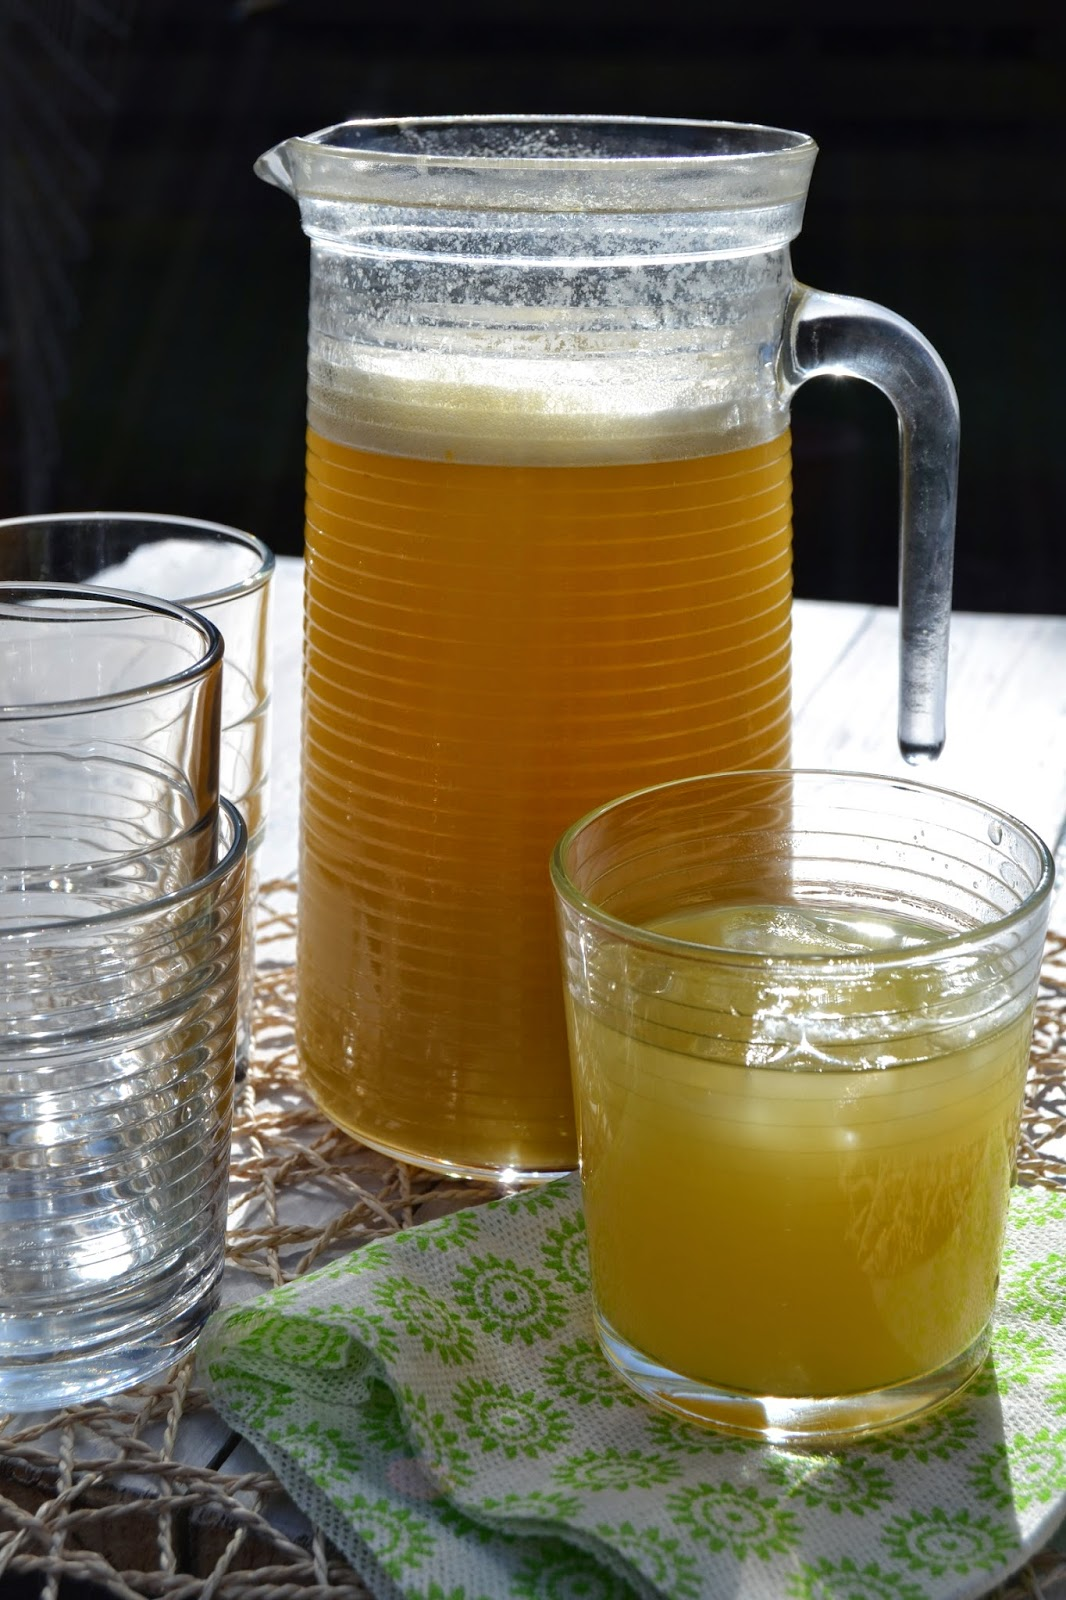 sparkling pineapple and green tea drink